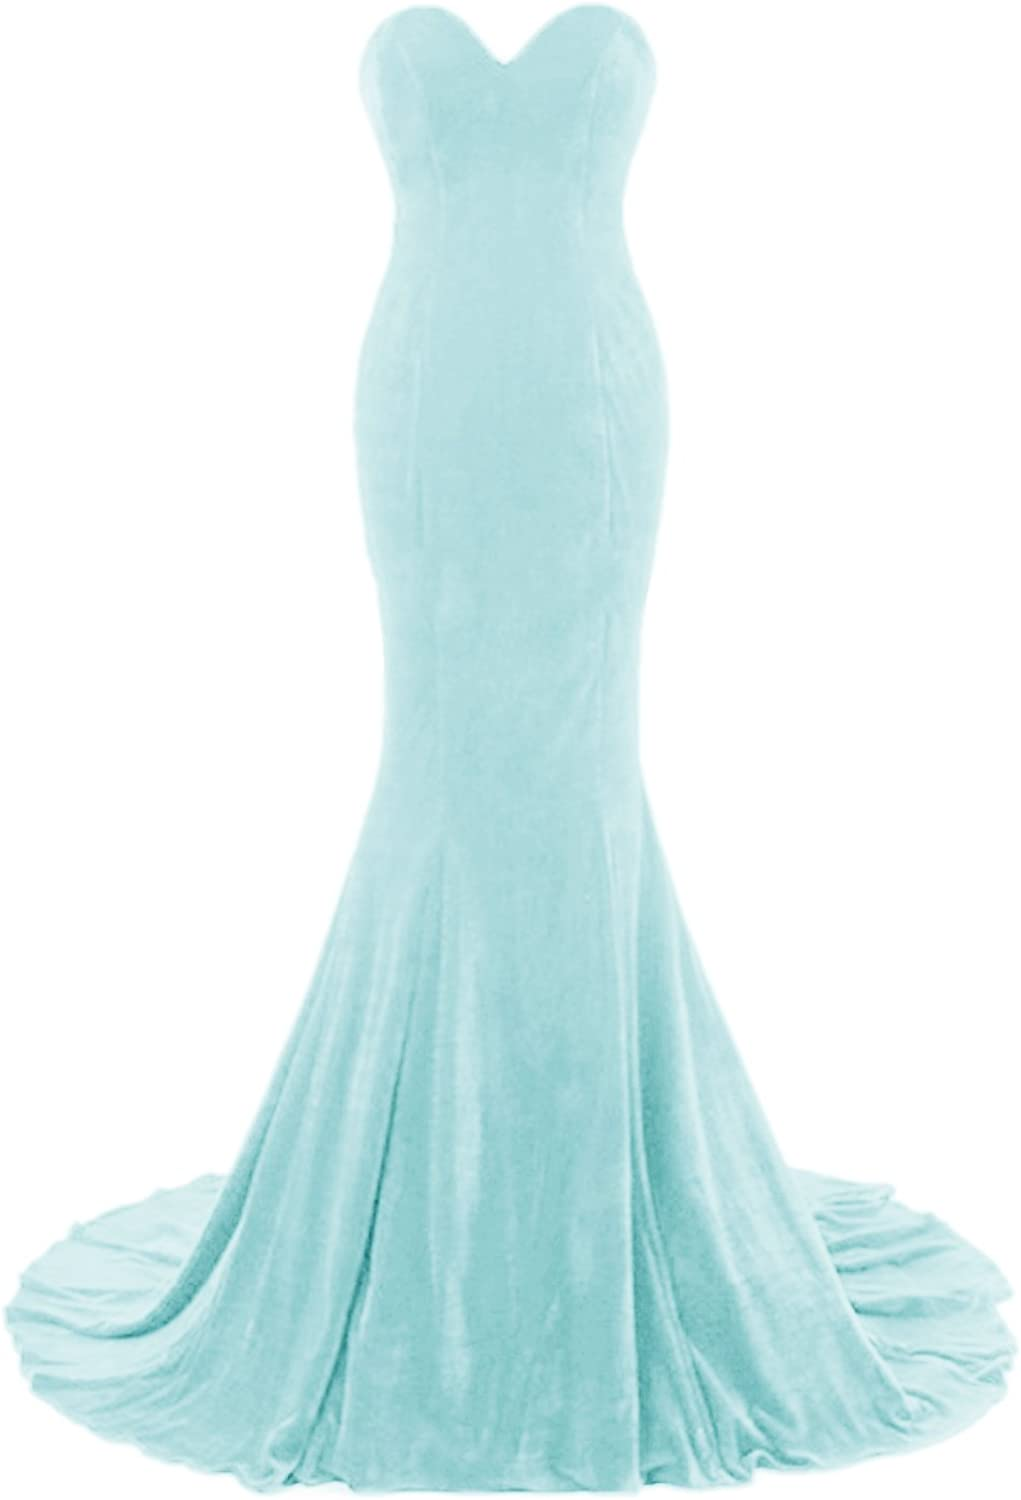 APXPF Womens Sweetheart Mermaid Velvet Fromal Prom Dress Evening Gown With Long